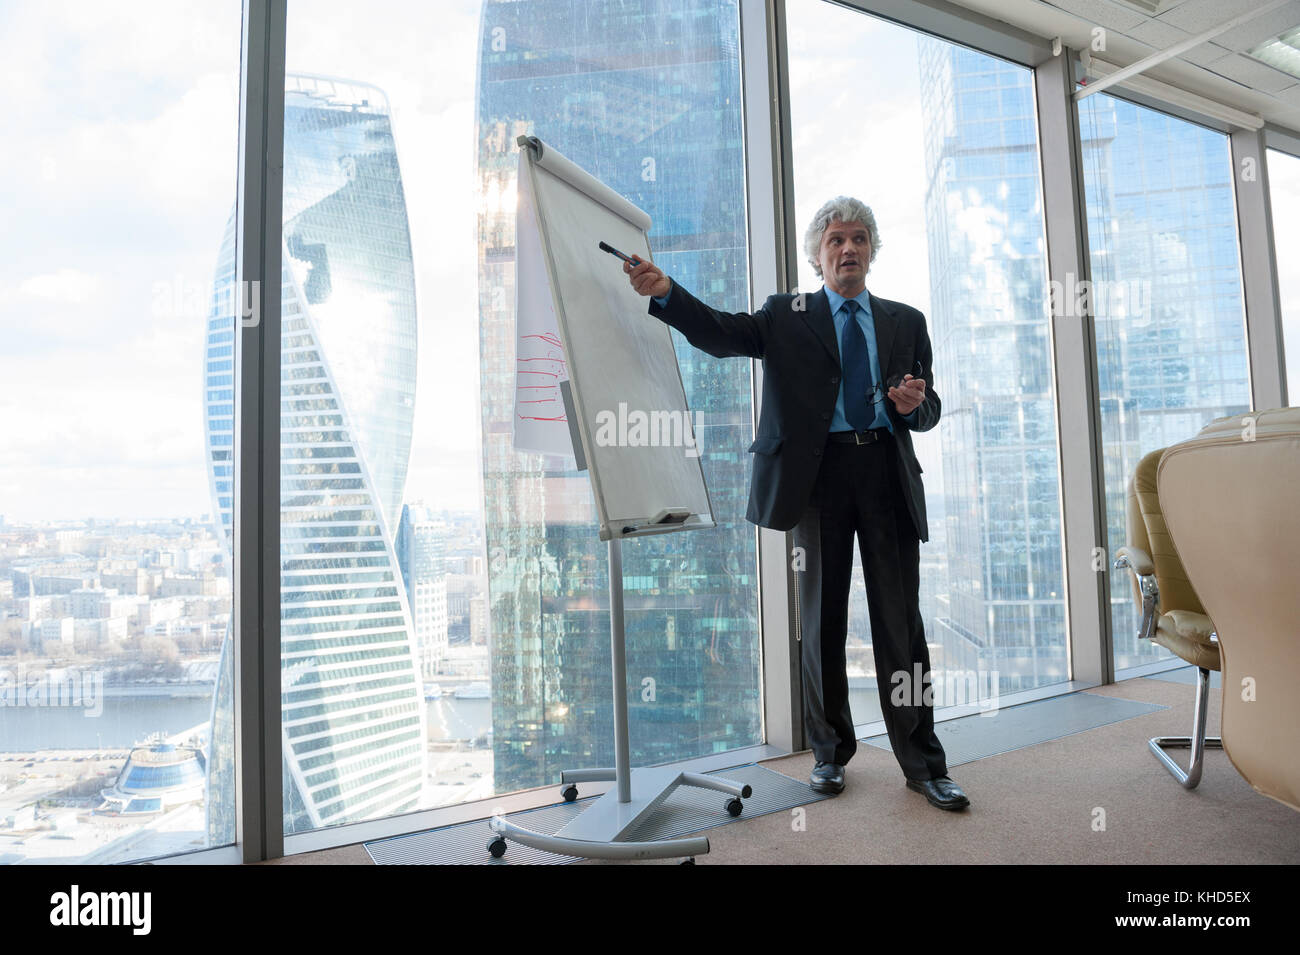 Mature business man making a presentation - Stock Image